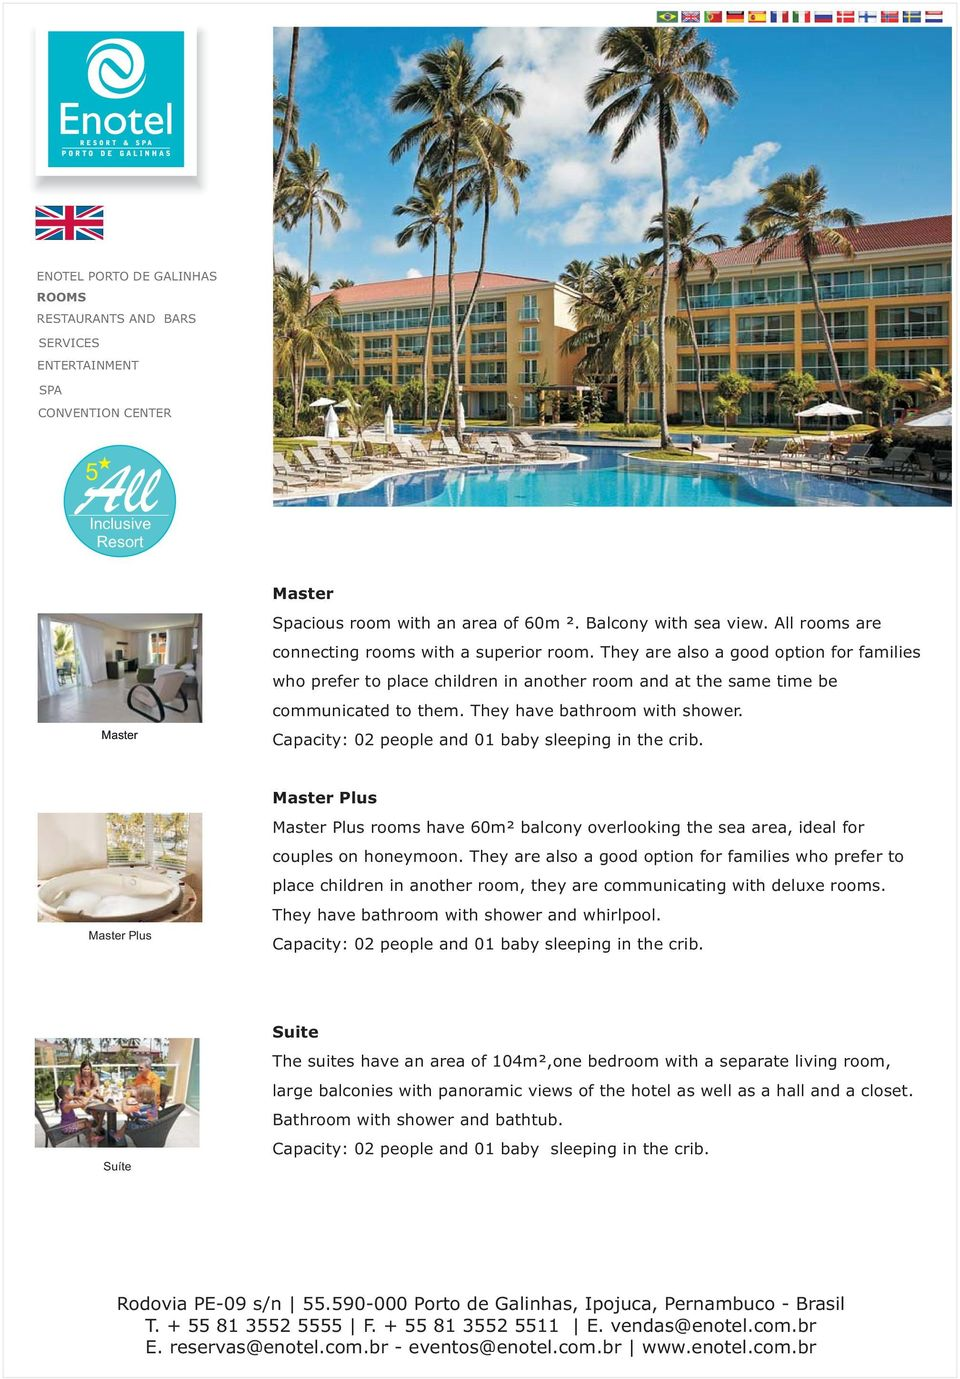 Capacity: 02 people and 01 baby sleeping in the crib. Master Plus Master Plus Master Plus rooms have 60m² balcony overlooking the sea area, ideal for couples on honeymoon.